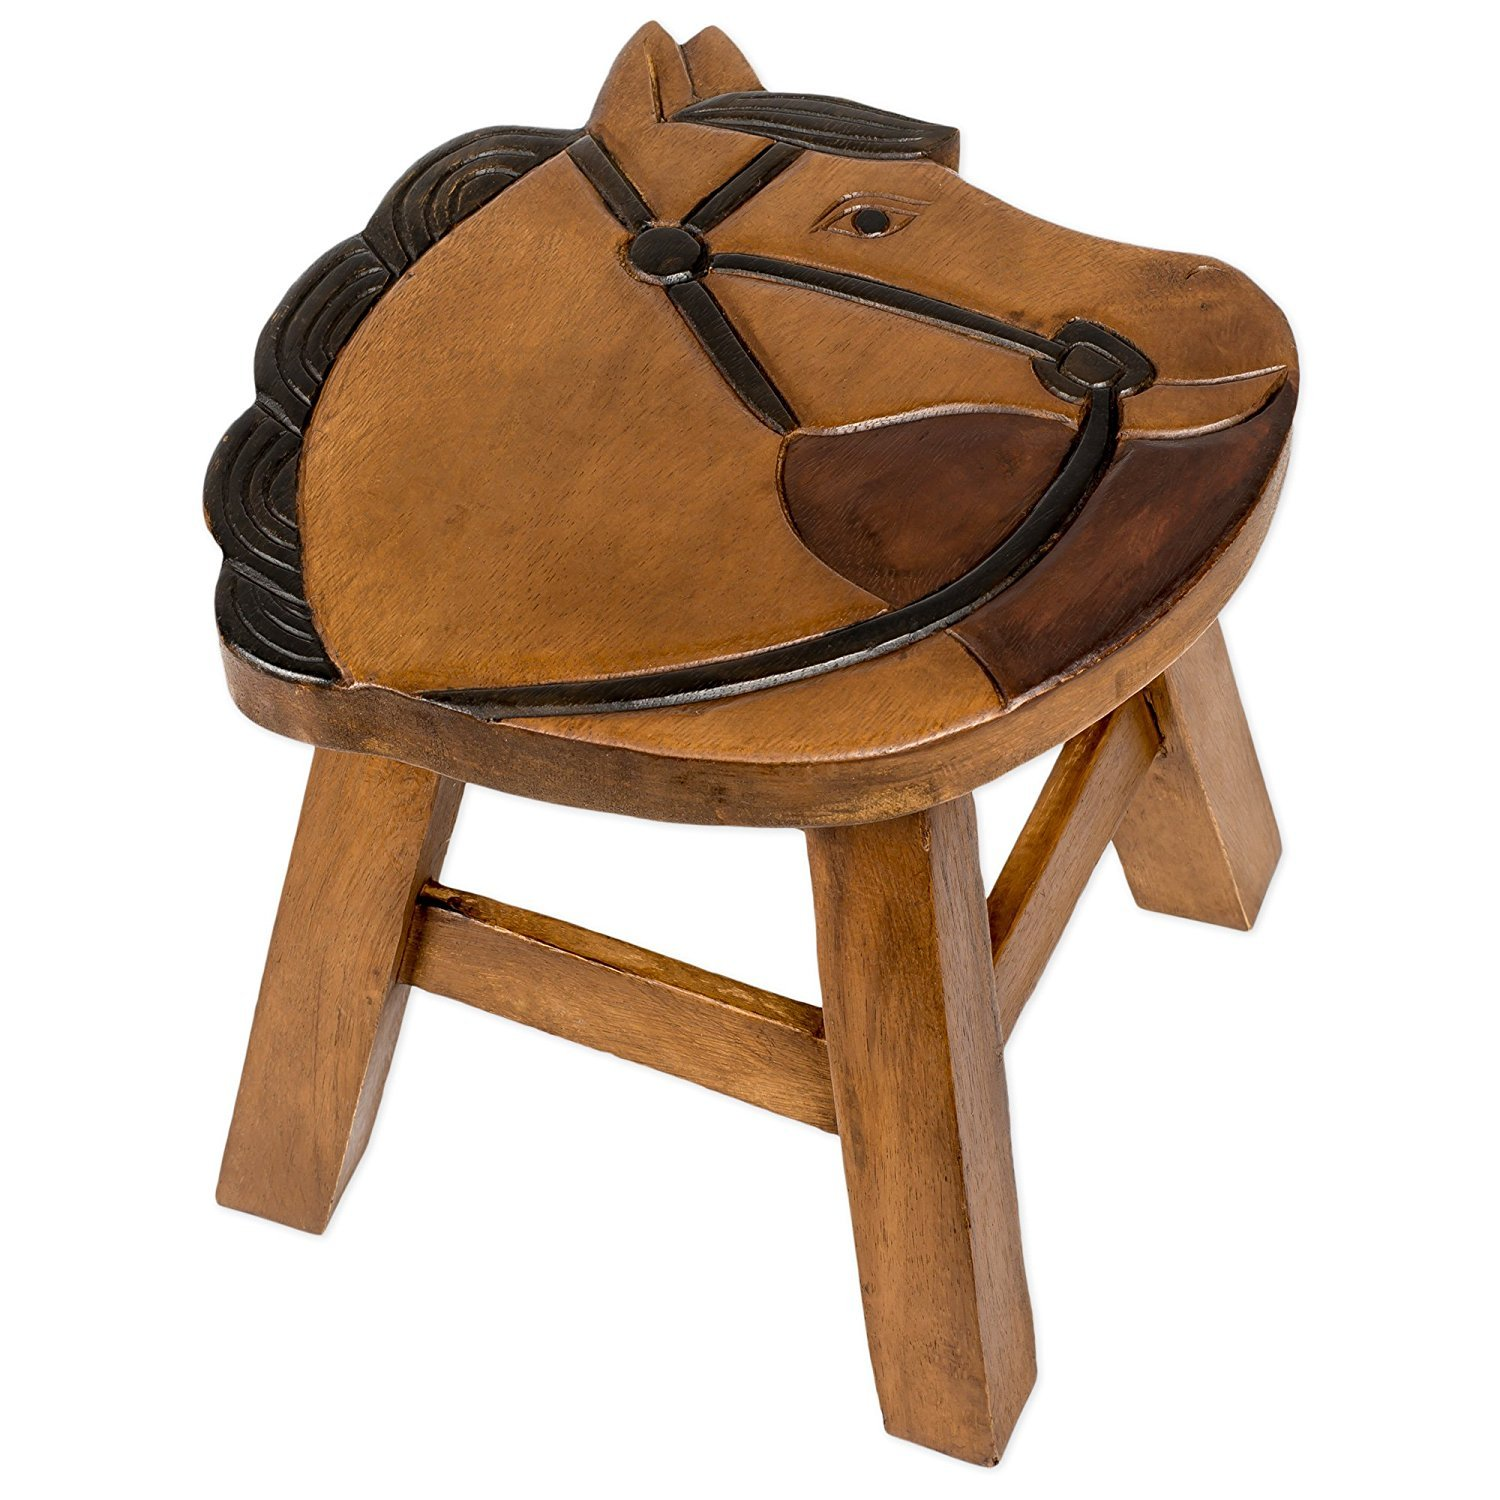 Horse Design Hand Carved Acacia Hardwood Decorative Short Stool by Sea Island Imports